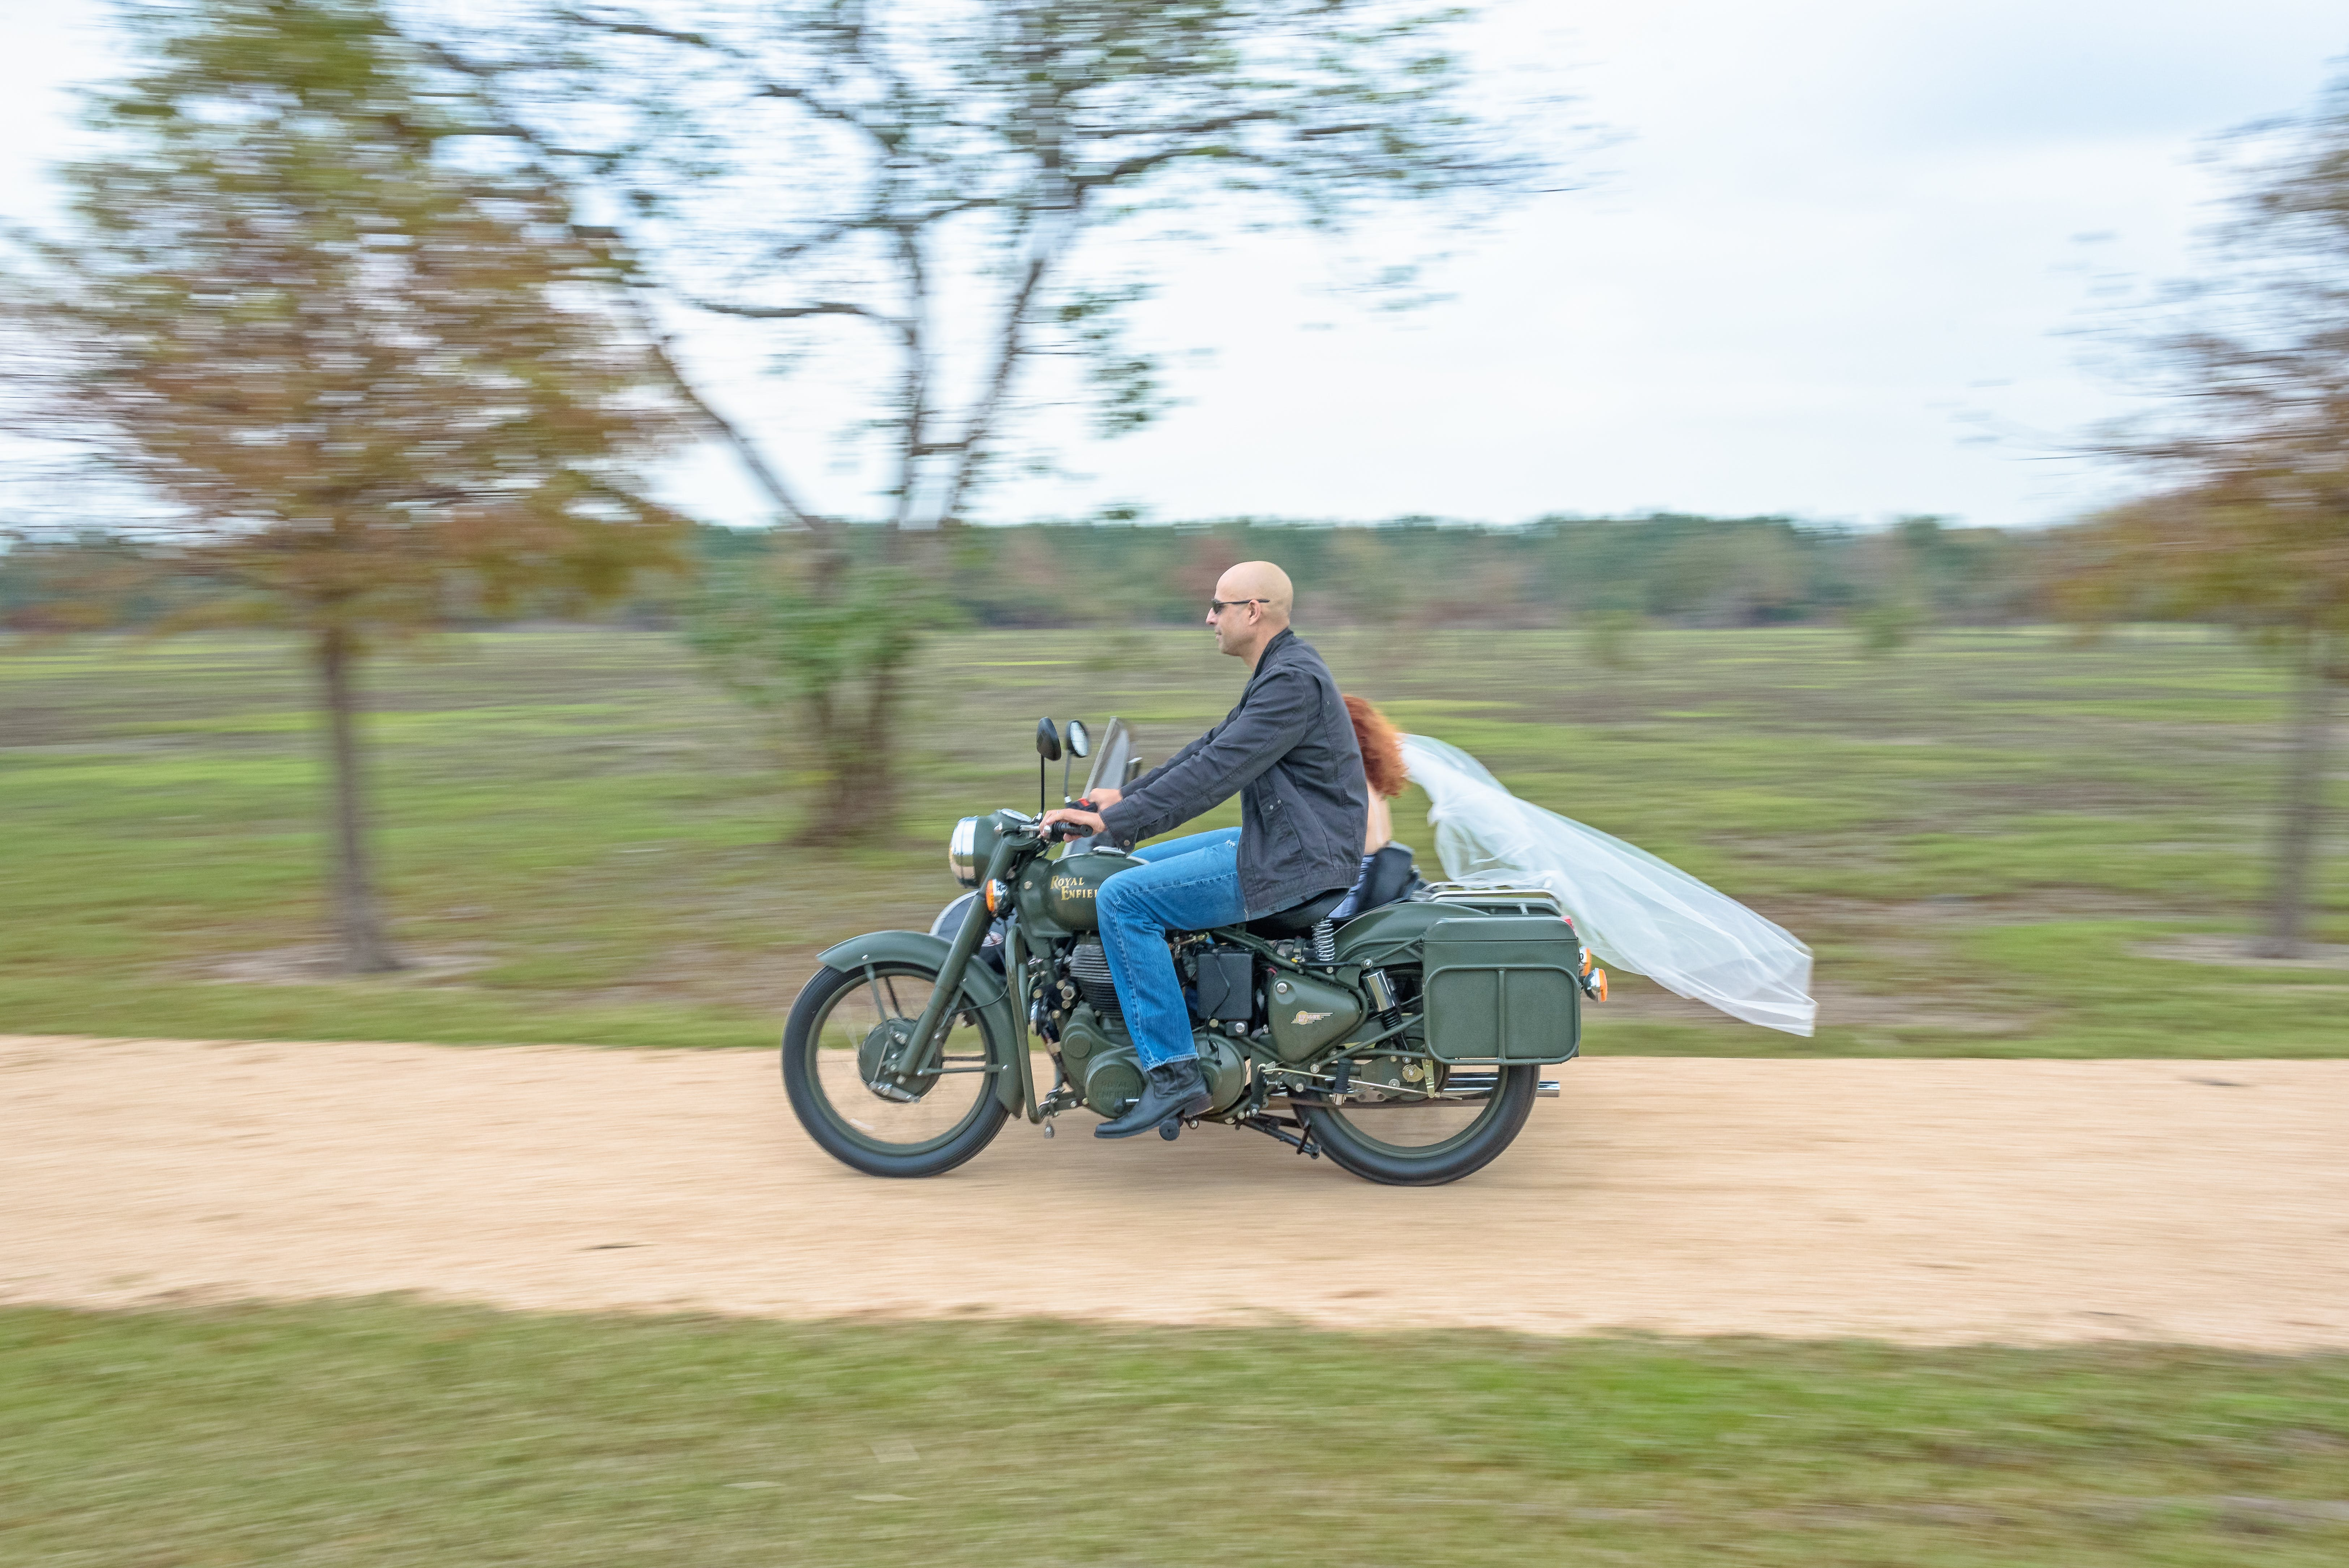 Free stock photo of motorcycle, sidecar